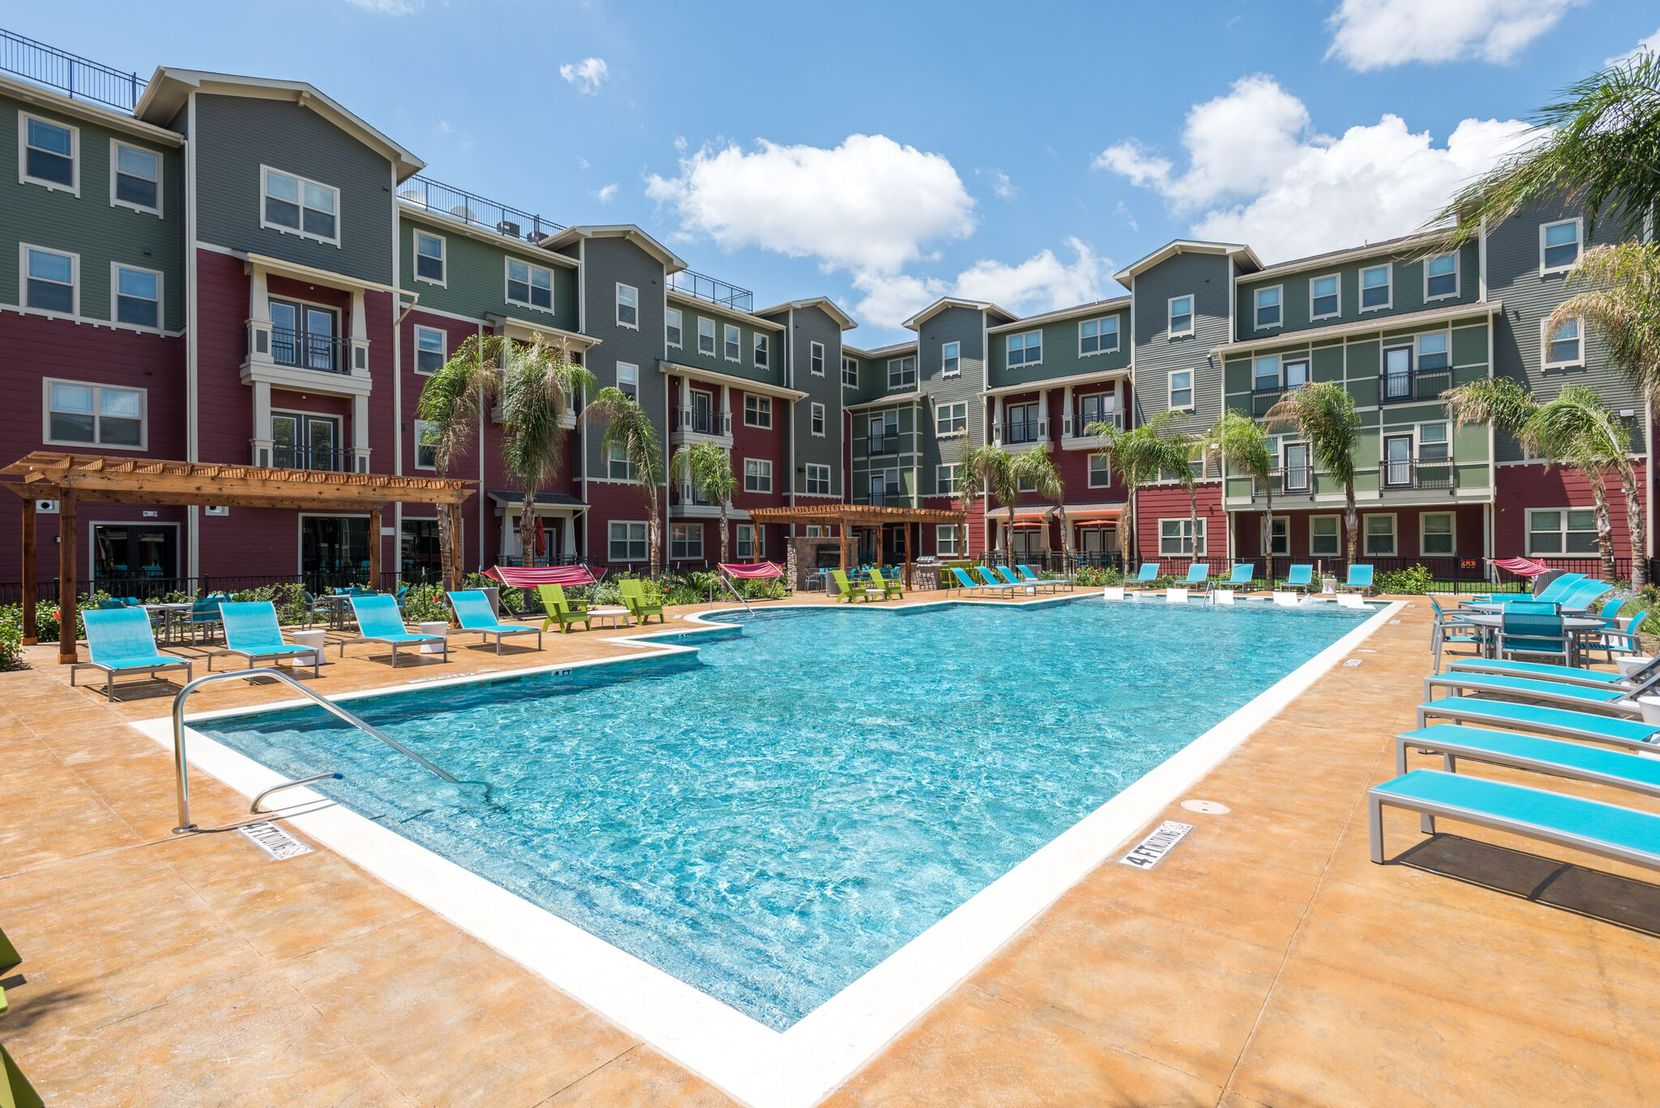 Fountain Residential's project at the University of Houston includes an oversized pool and outdoor gathering areas for students.